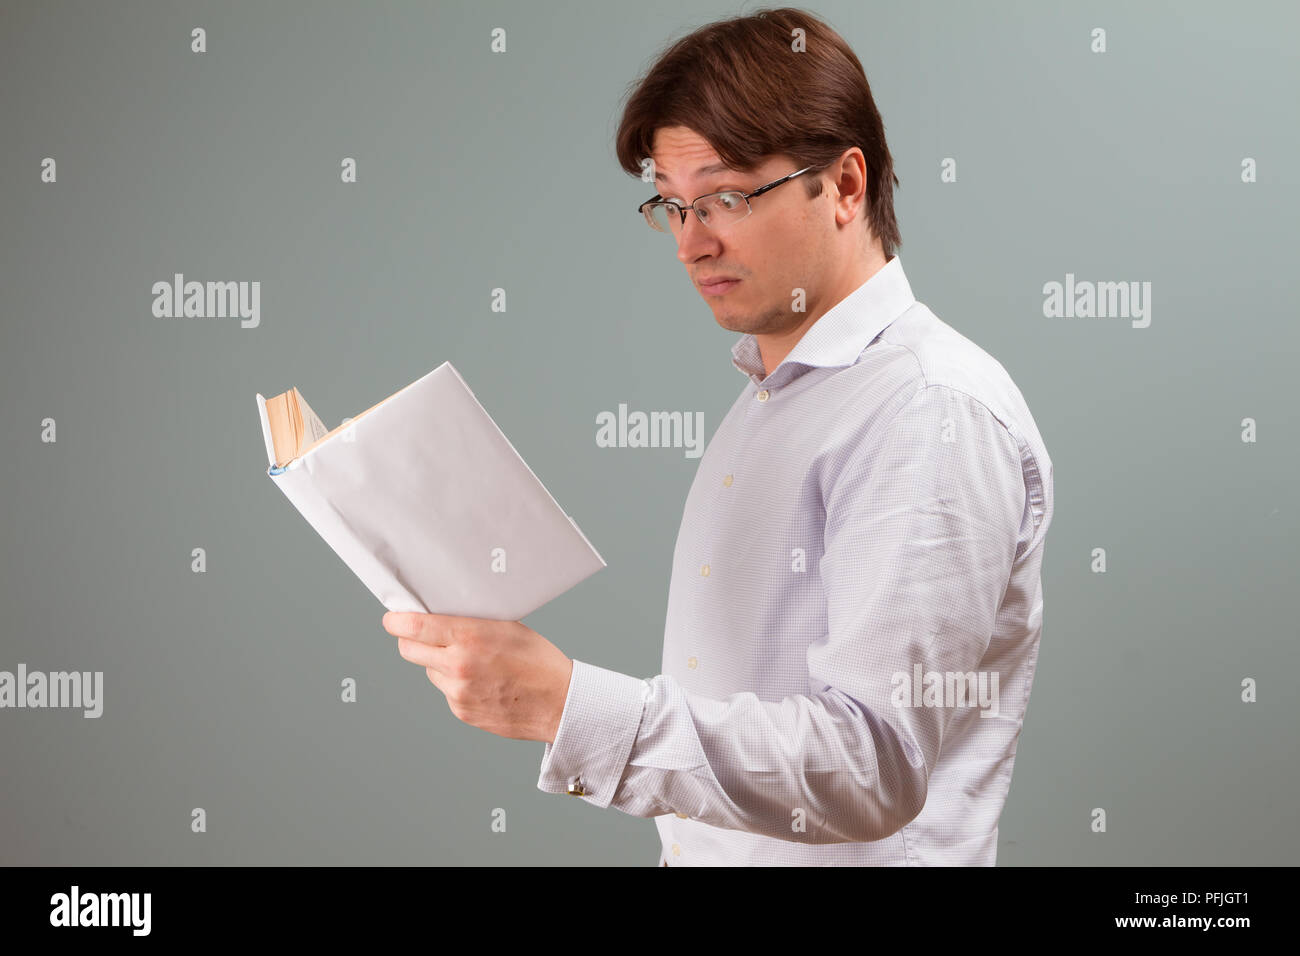 A young man, focused on reading a book in white cover, with surprised emotion on the face; horizontal orientation studio portrait. - Stock Image